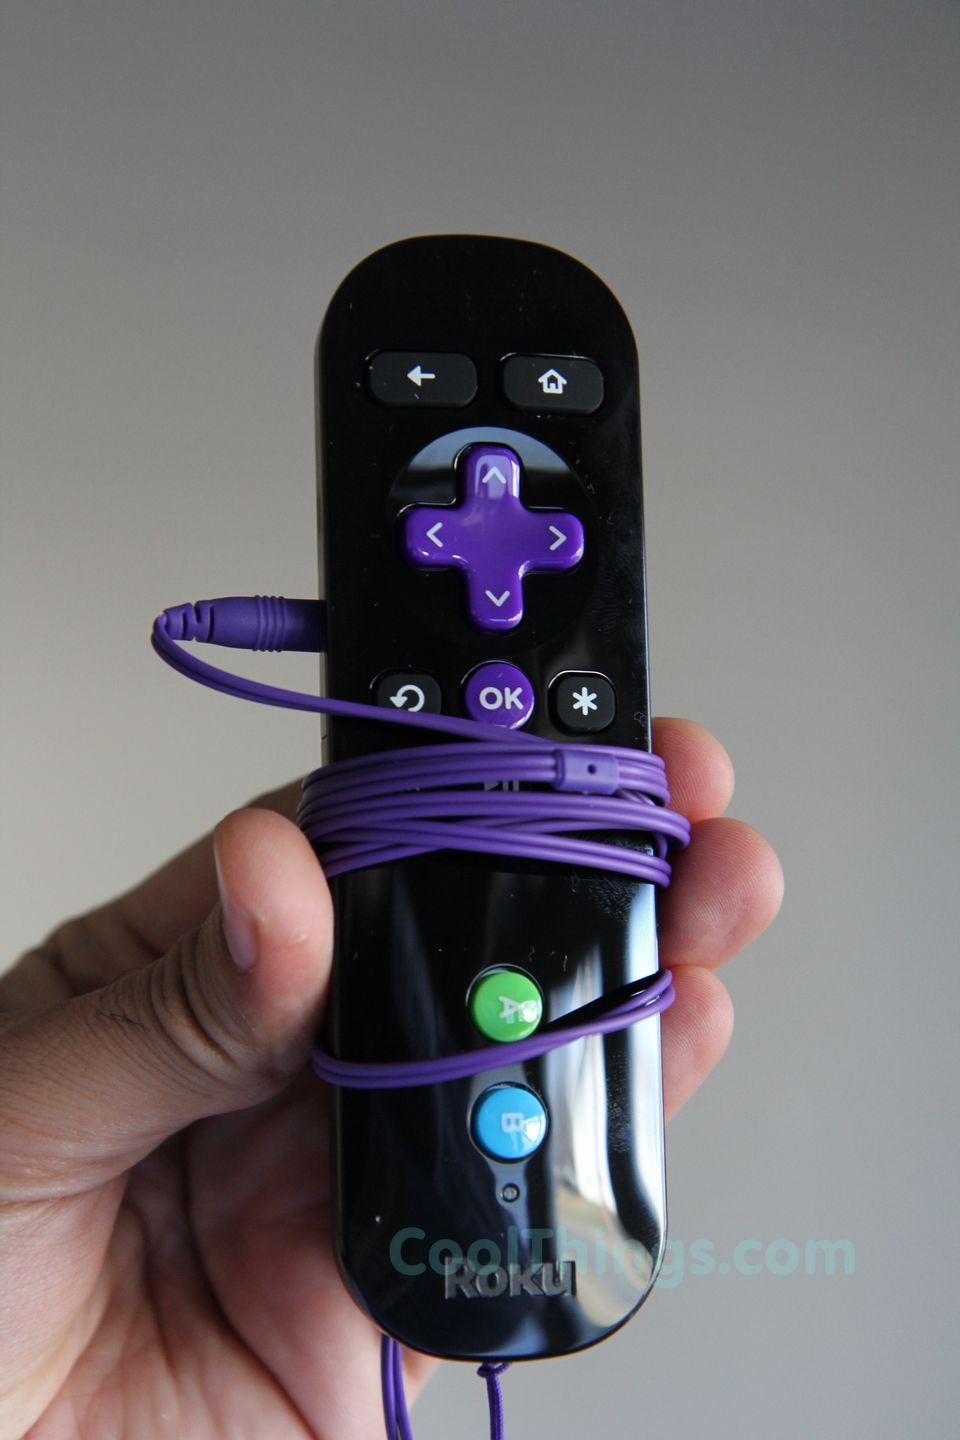 Roku Box: Roku 3 Remote Comes With Built-In Headphone Jack